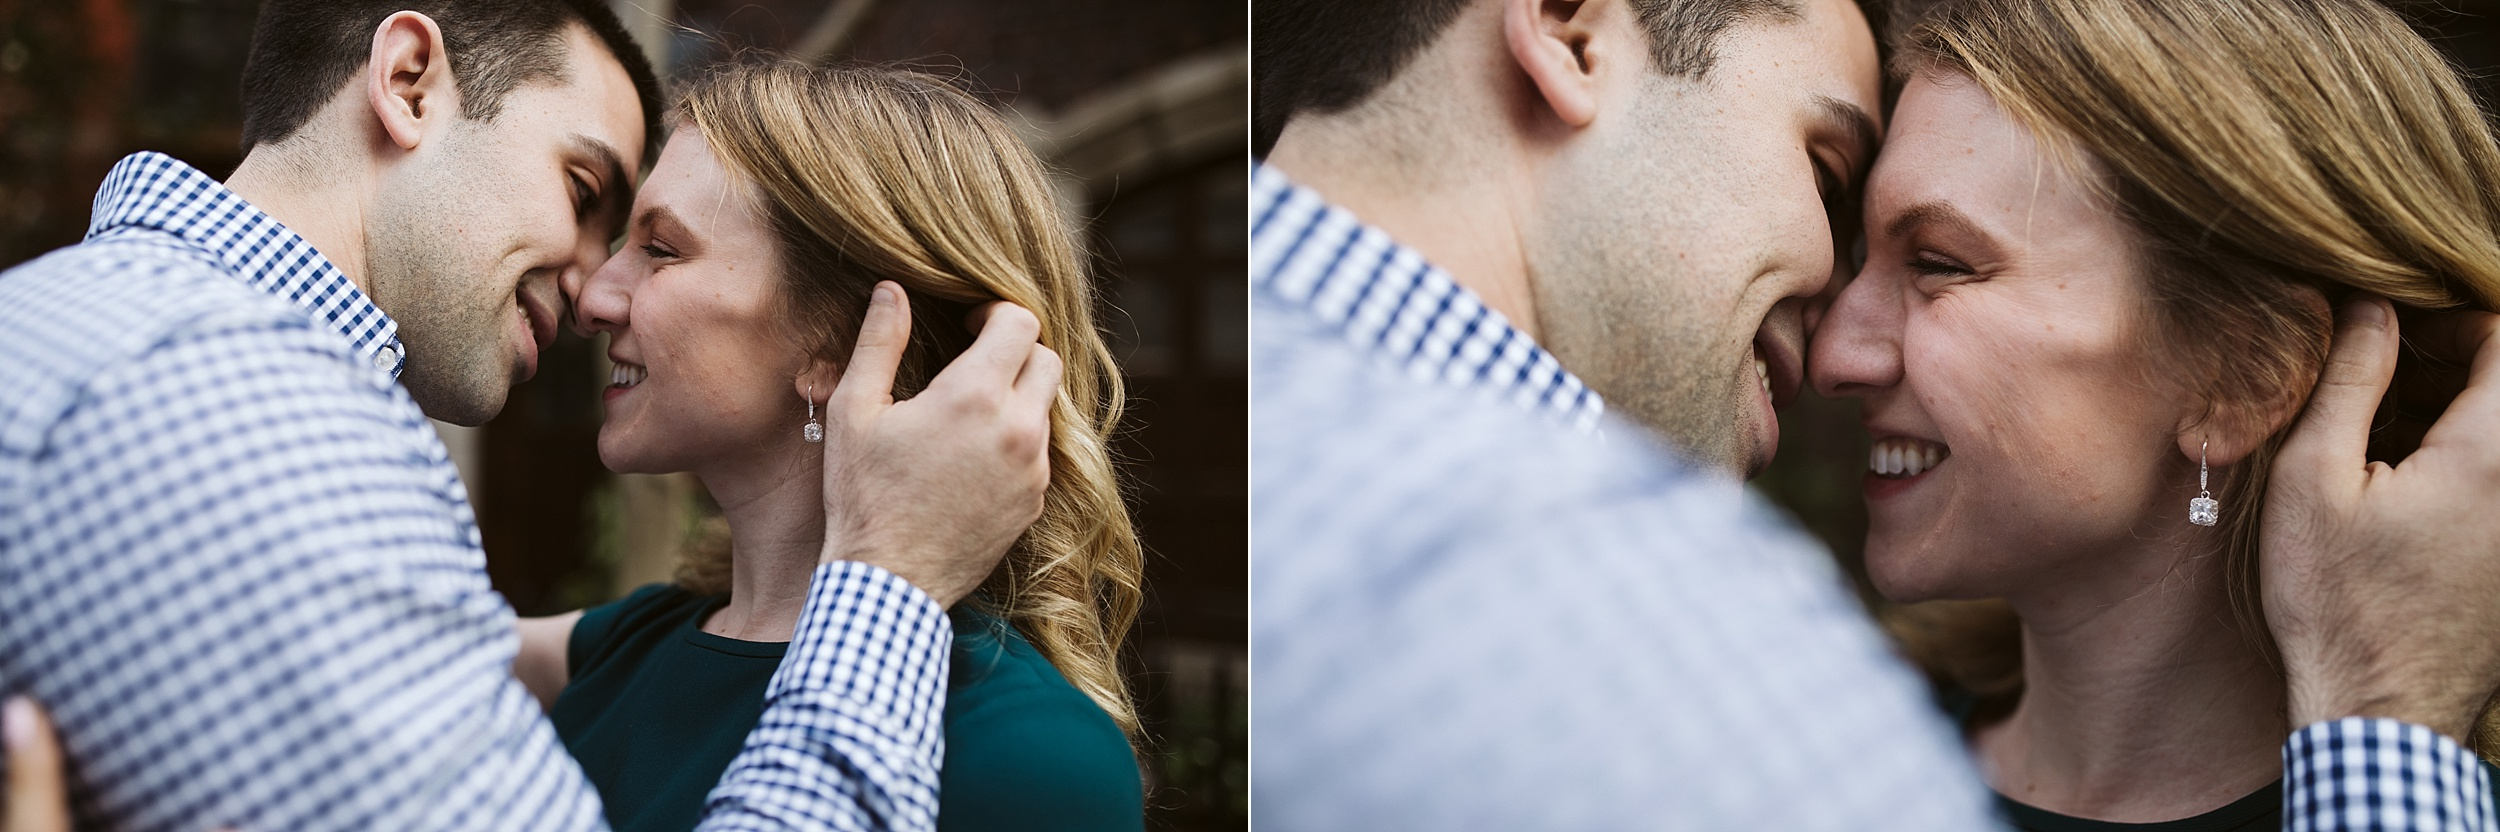 Allison Sullivan - Park Slope + Prospect Park Brooklyn Engagement Session 0007.JPG